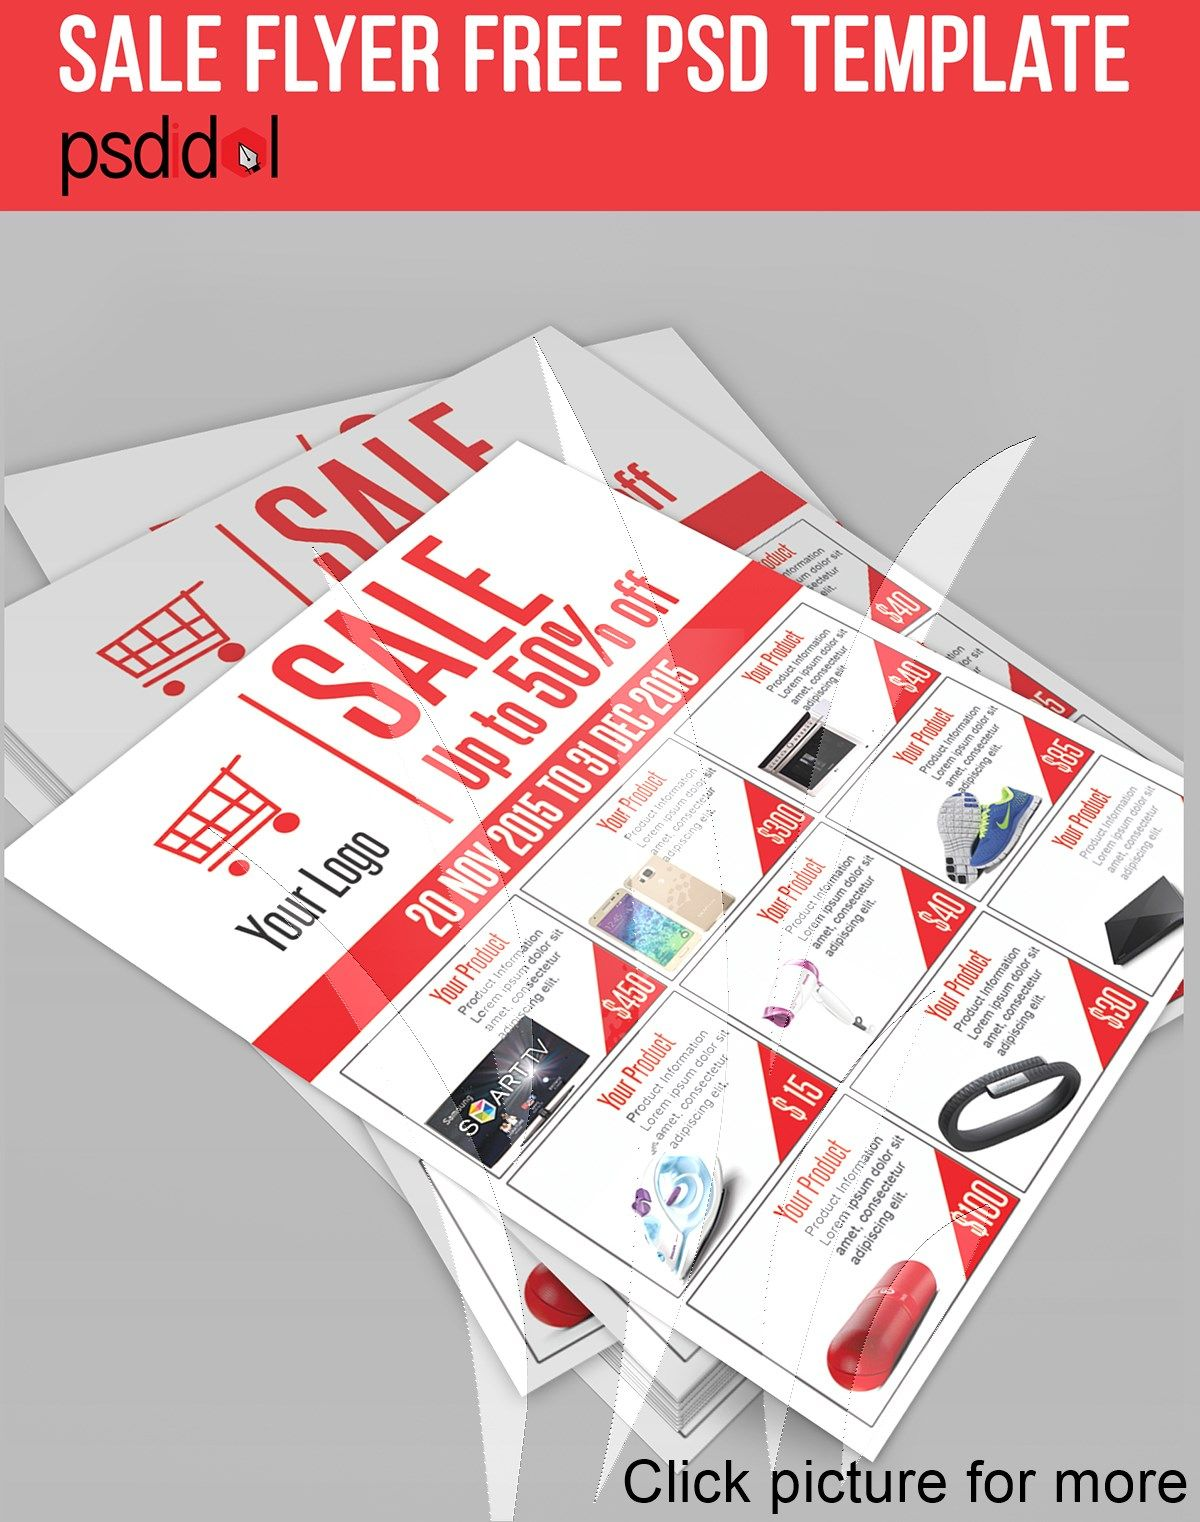 Business Flyer Maker Business Flyer Maker Free Business Flyer Maker App Business Flyer Maker Online Free Flyer Free Business Flyer Templates Psd Template Free